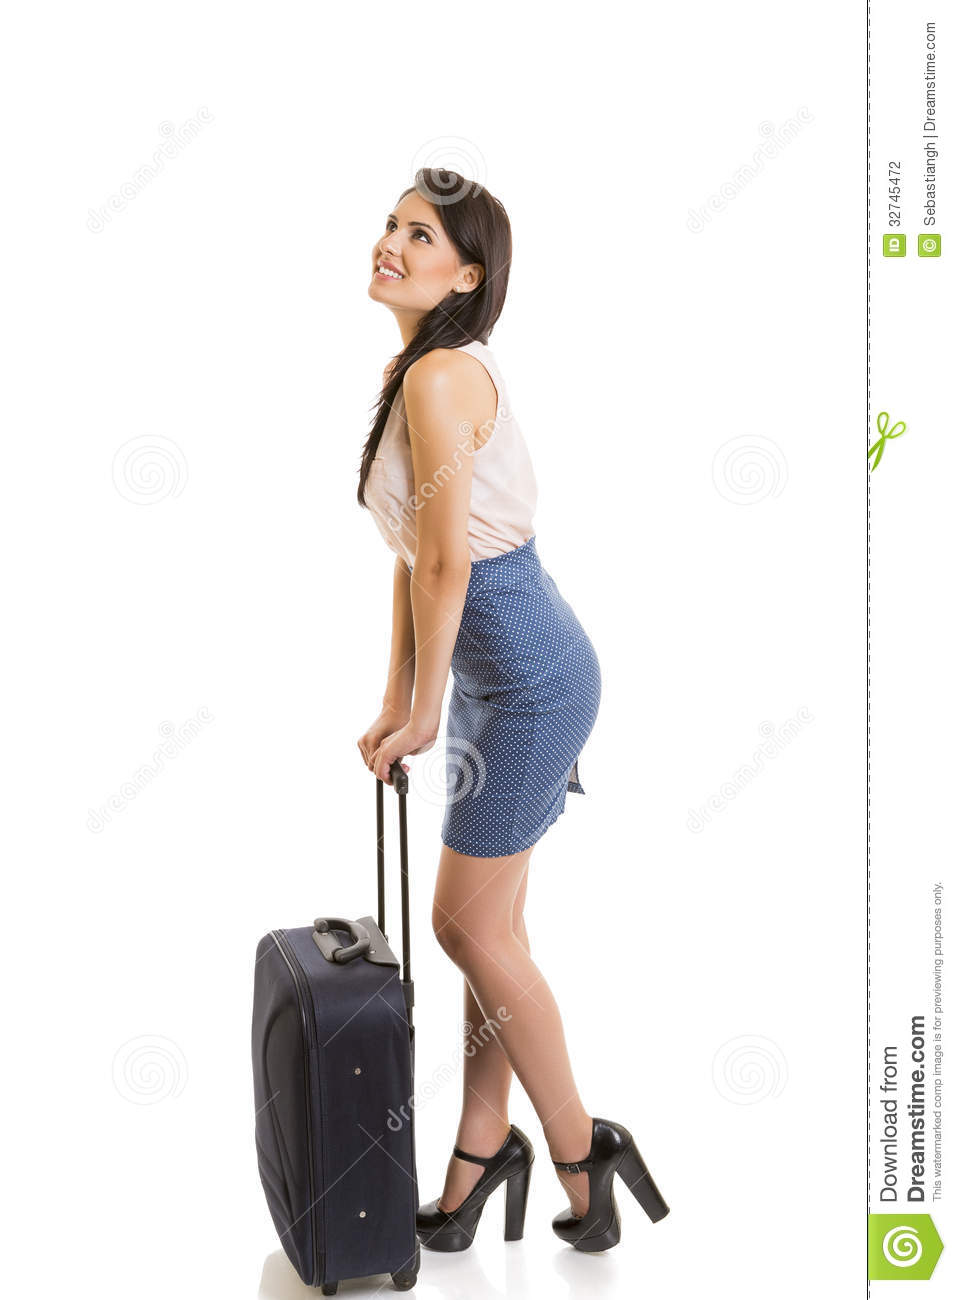 Smiling Woman With Travel Luggage Stock Photography - Image: 32745472